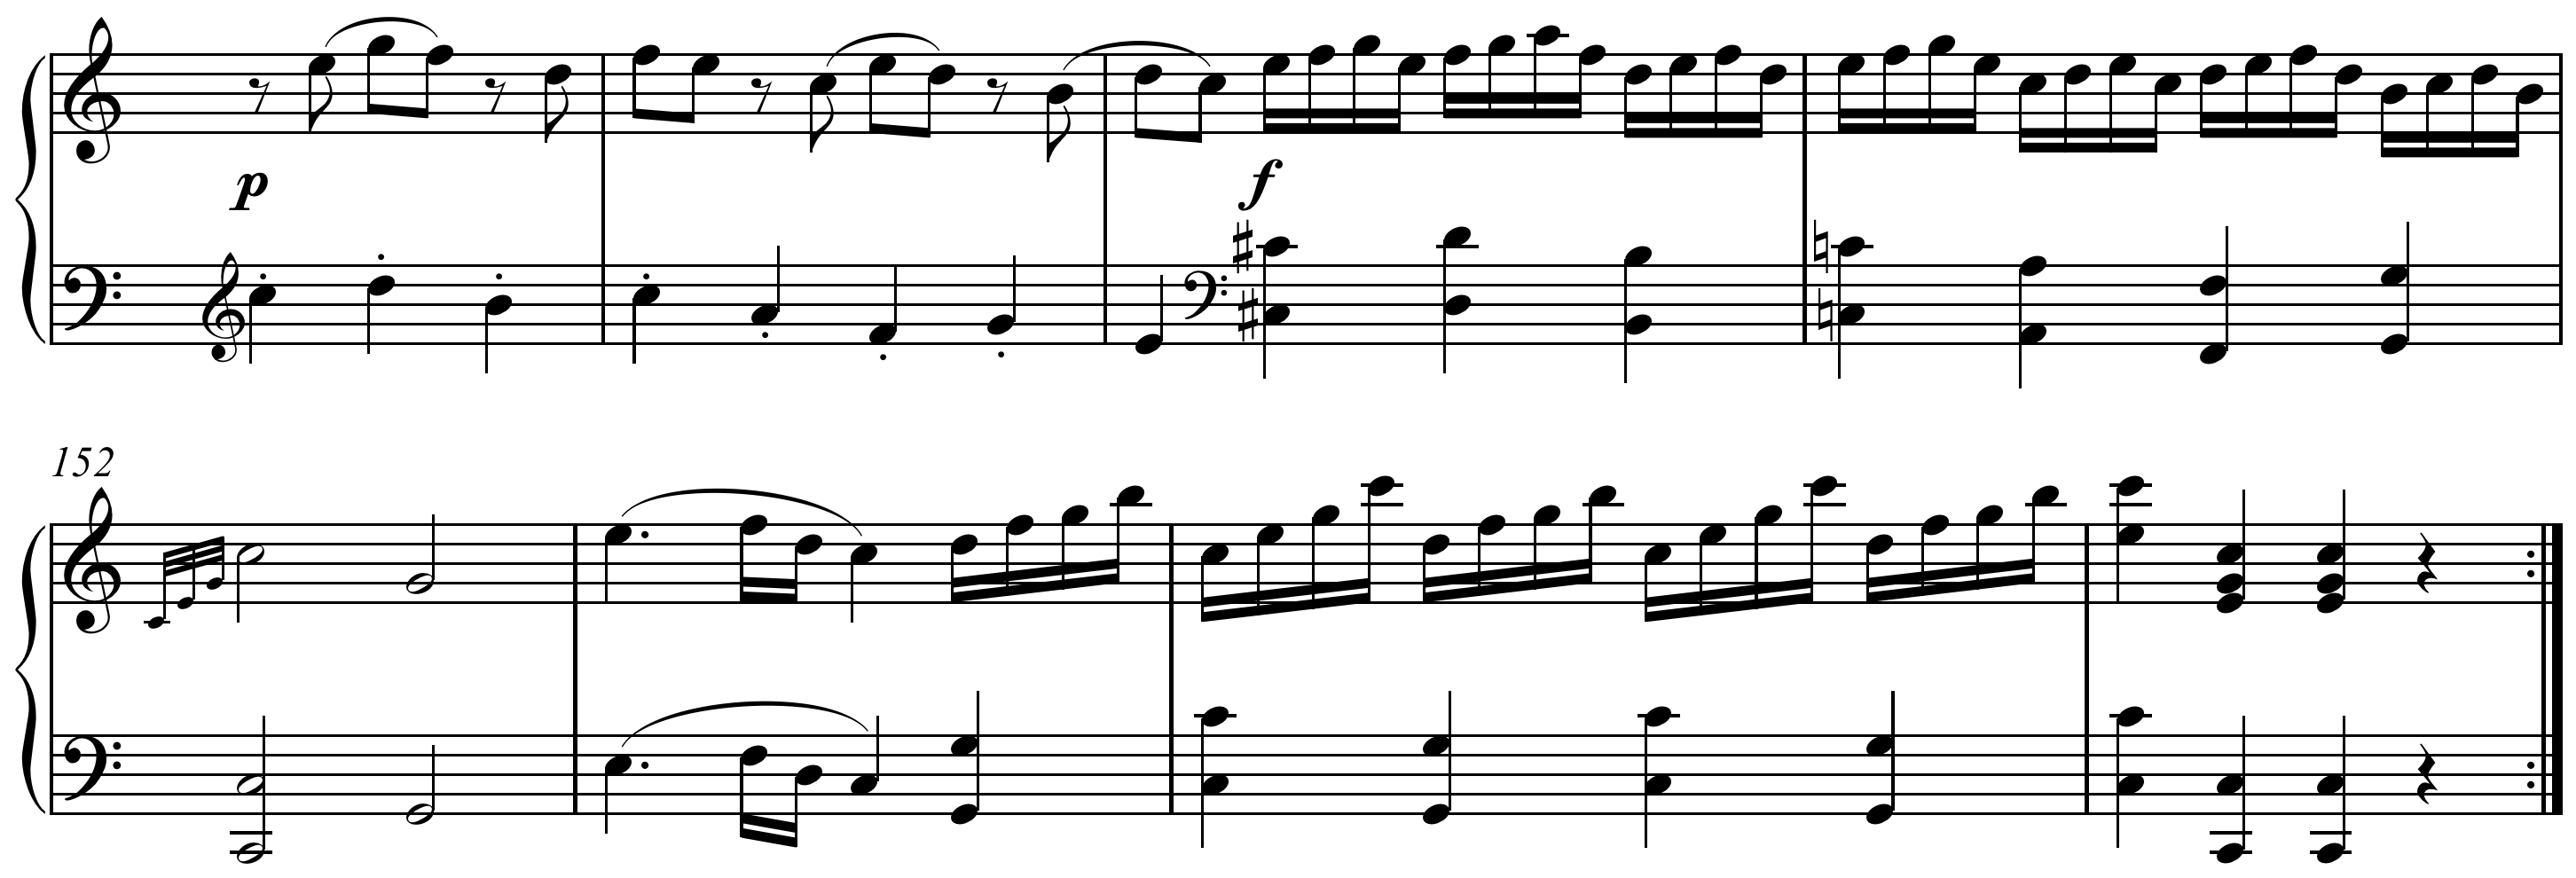 mozart piano sonata in c kv 309